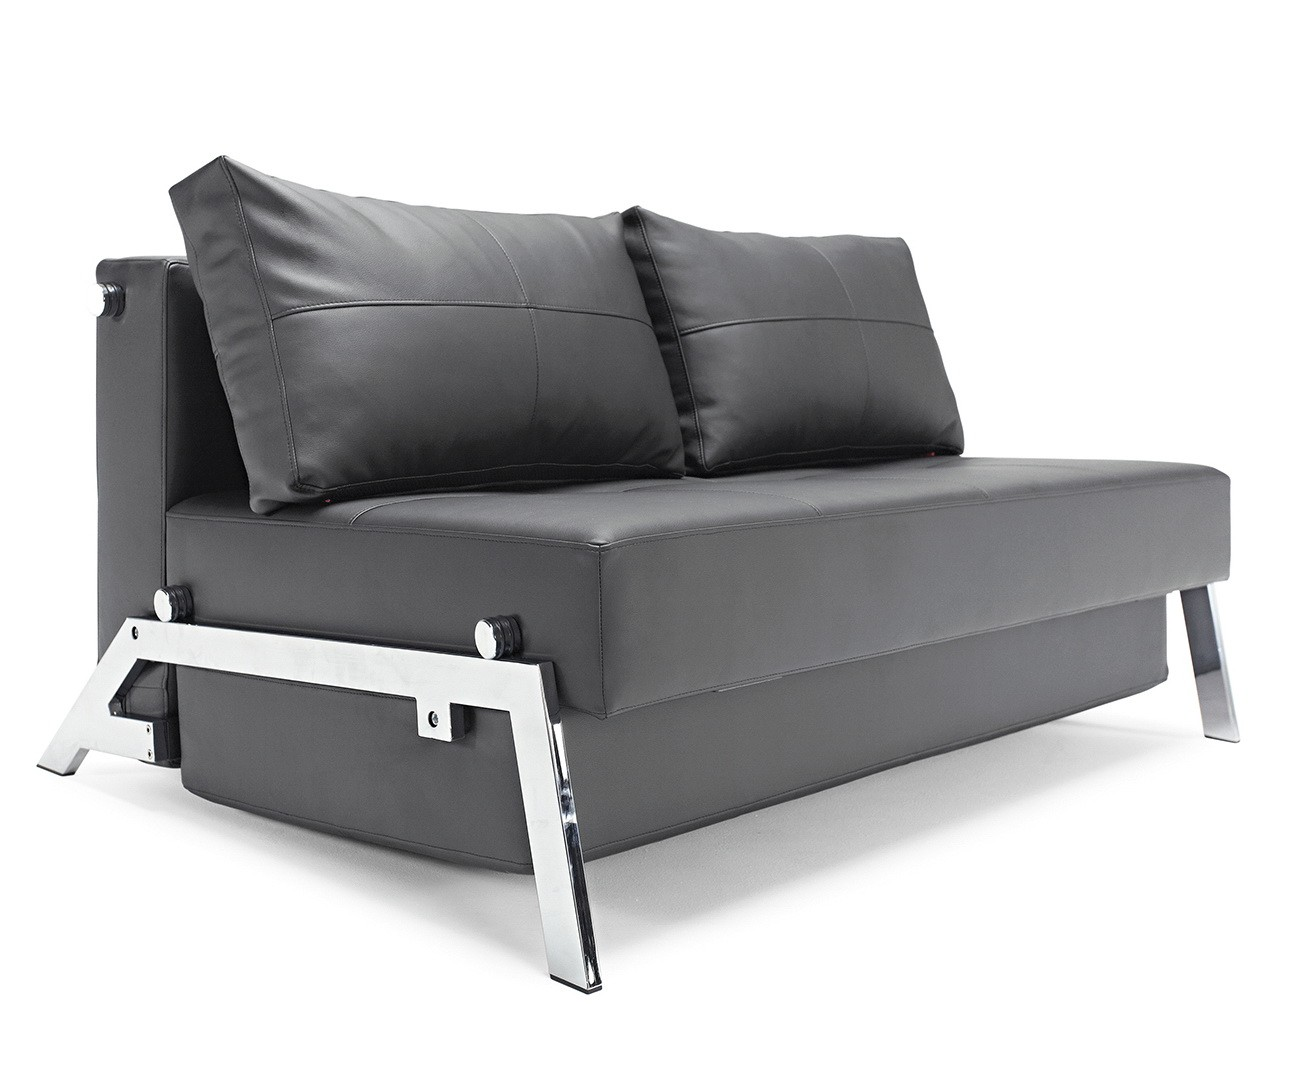 Cubed Deluxe Sofa Bed Innovation Usa Available At Nova